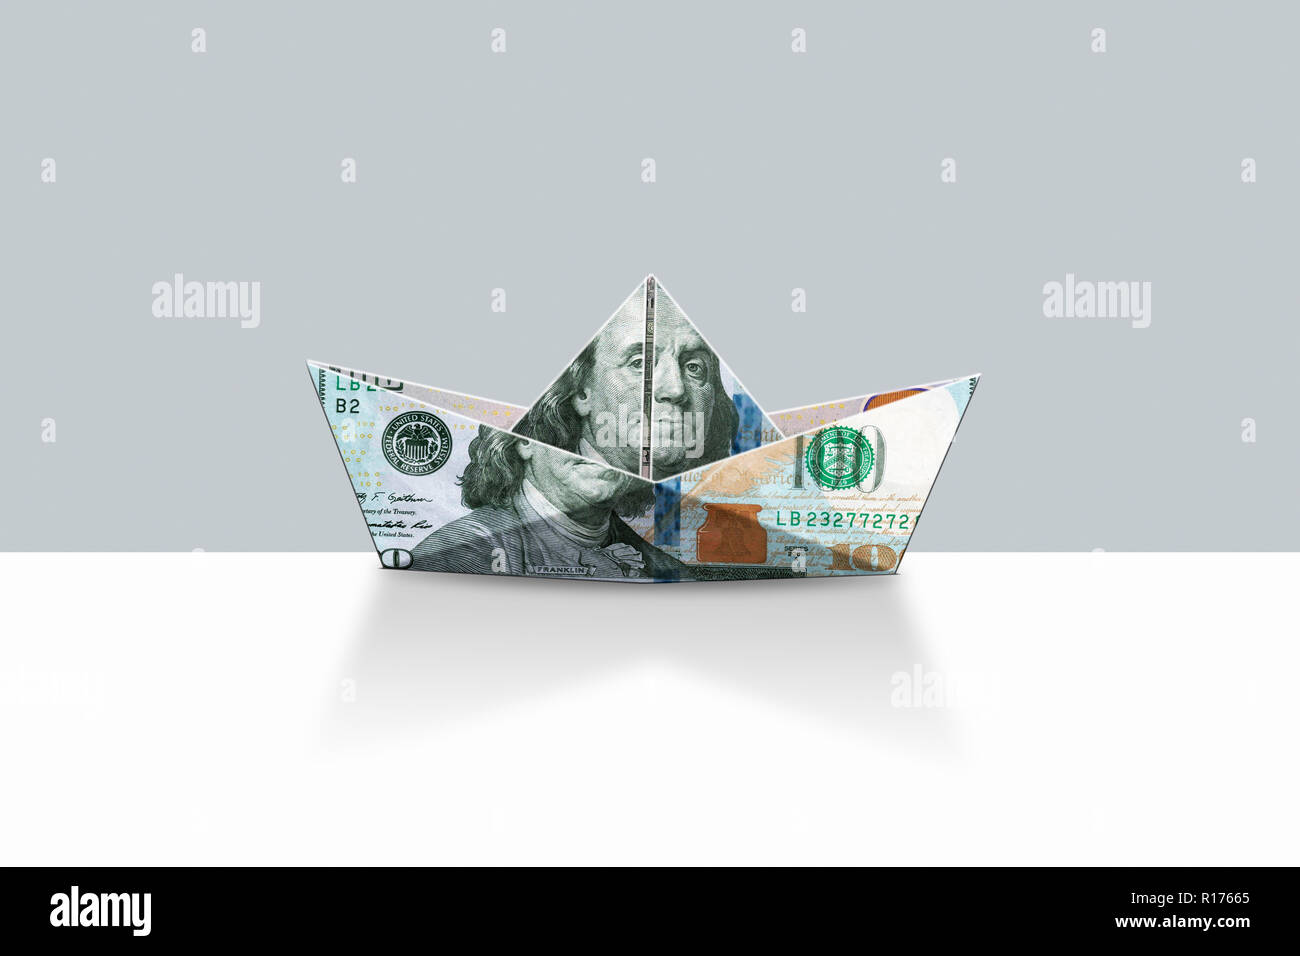 Origami shape boat made from US dollar bill, grey background - Stock Image